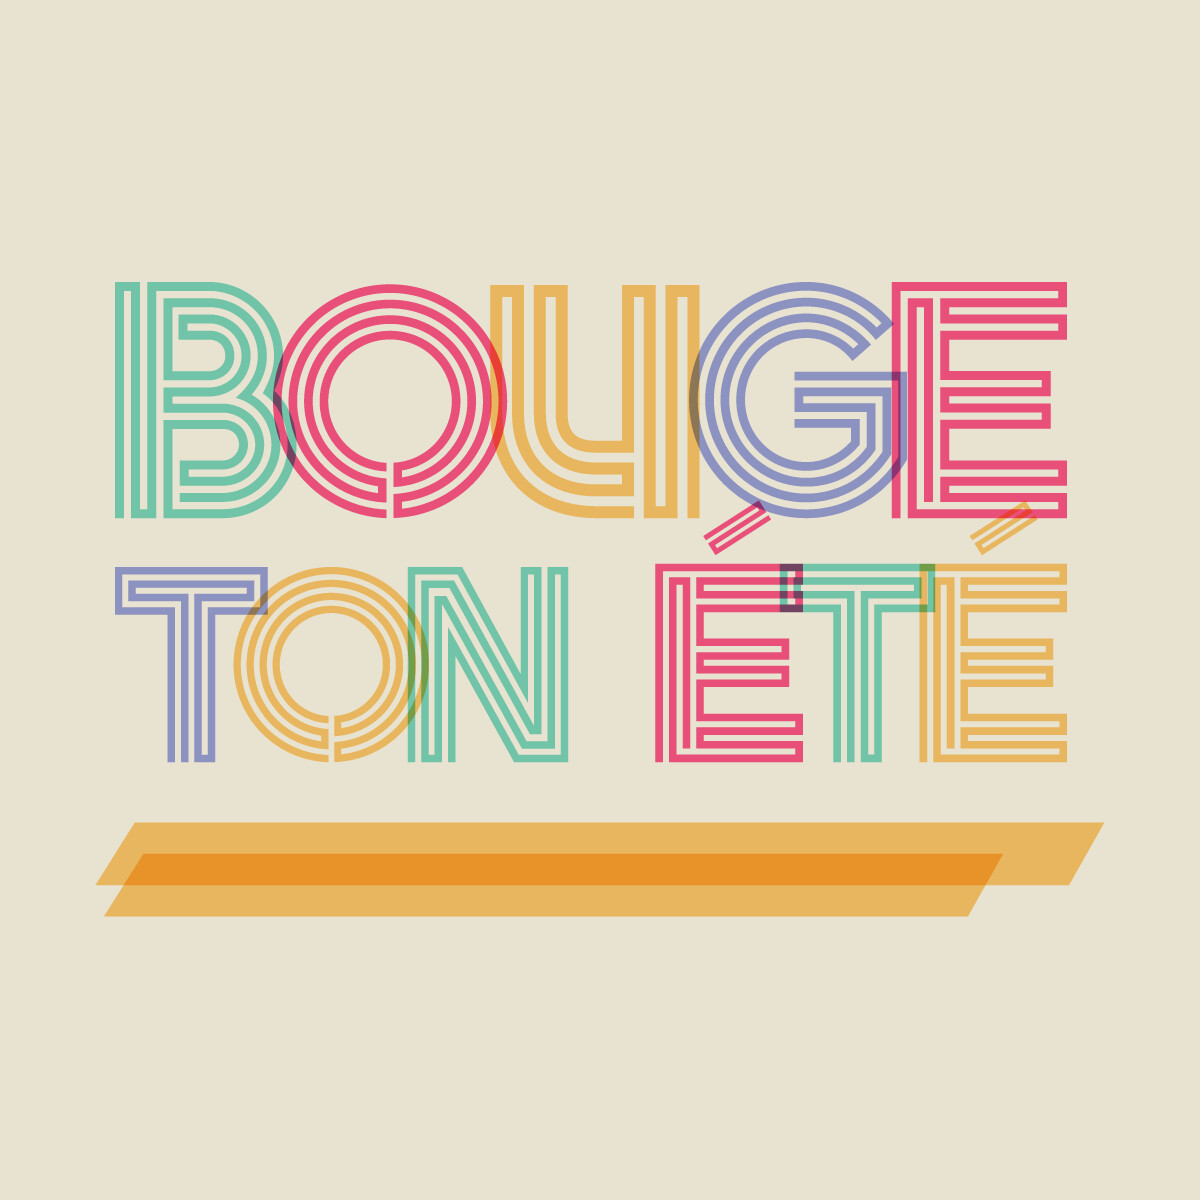 August 16-20 août - Camp d'été - French Day Camp - For ages 6 to 12